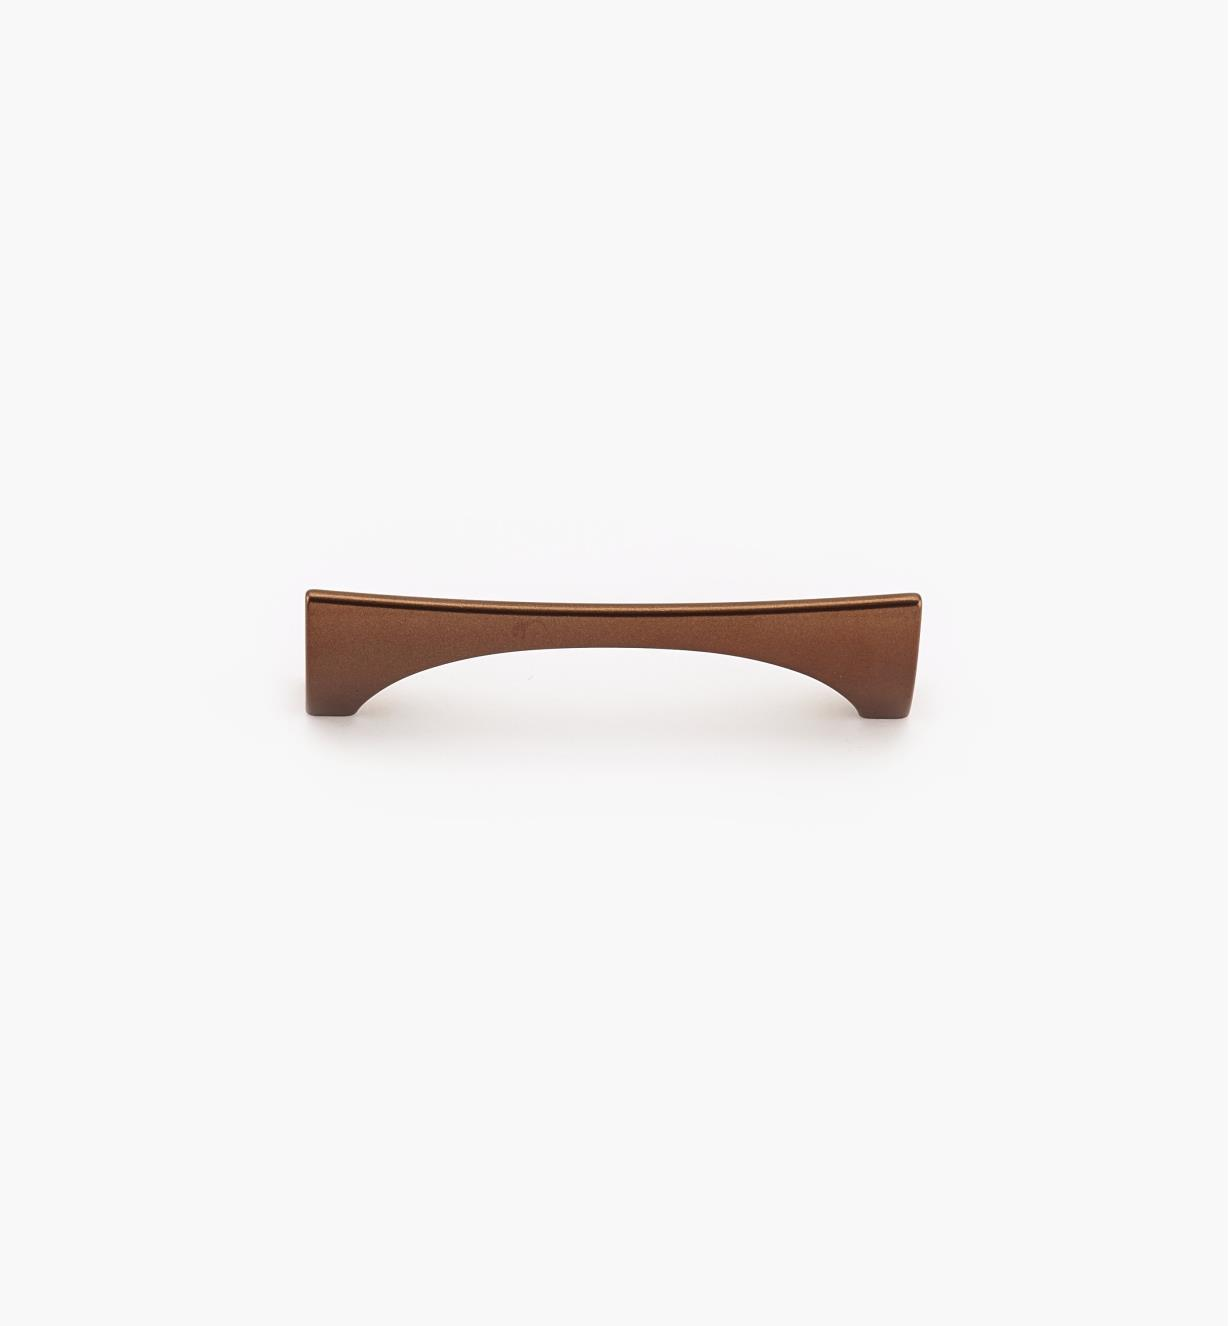 02W3920 - Niteroi 96mm Tuscan Copper Handle